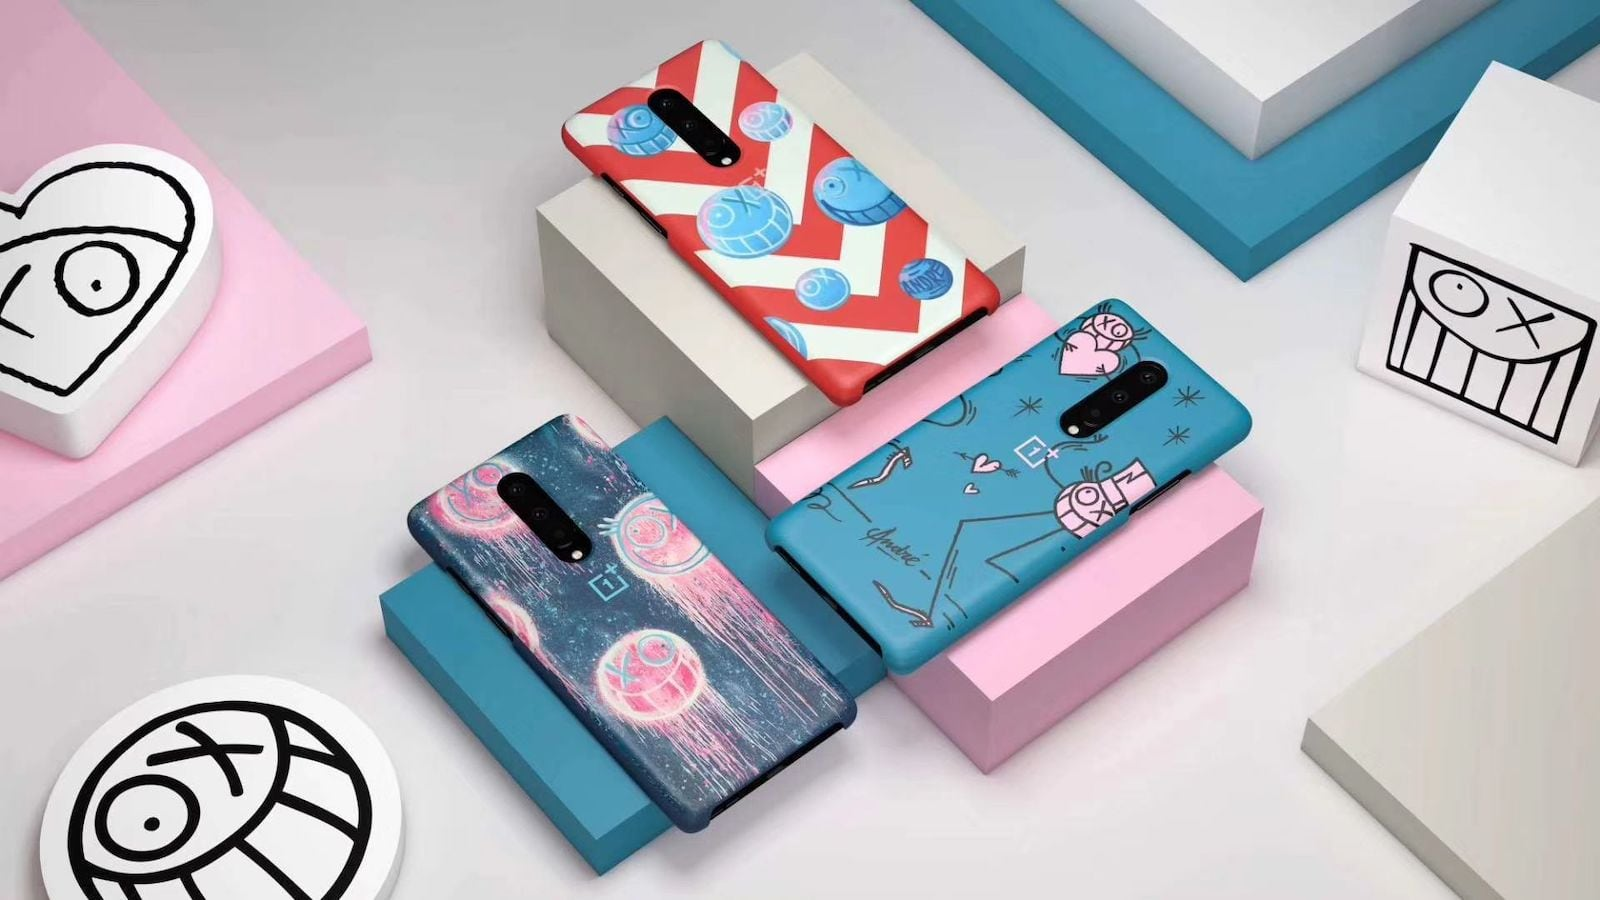 OnePlus x André Limited Edition OnePlus 8 Case